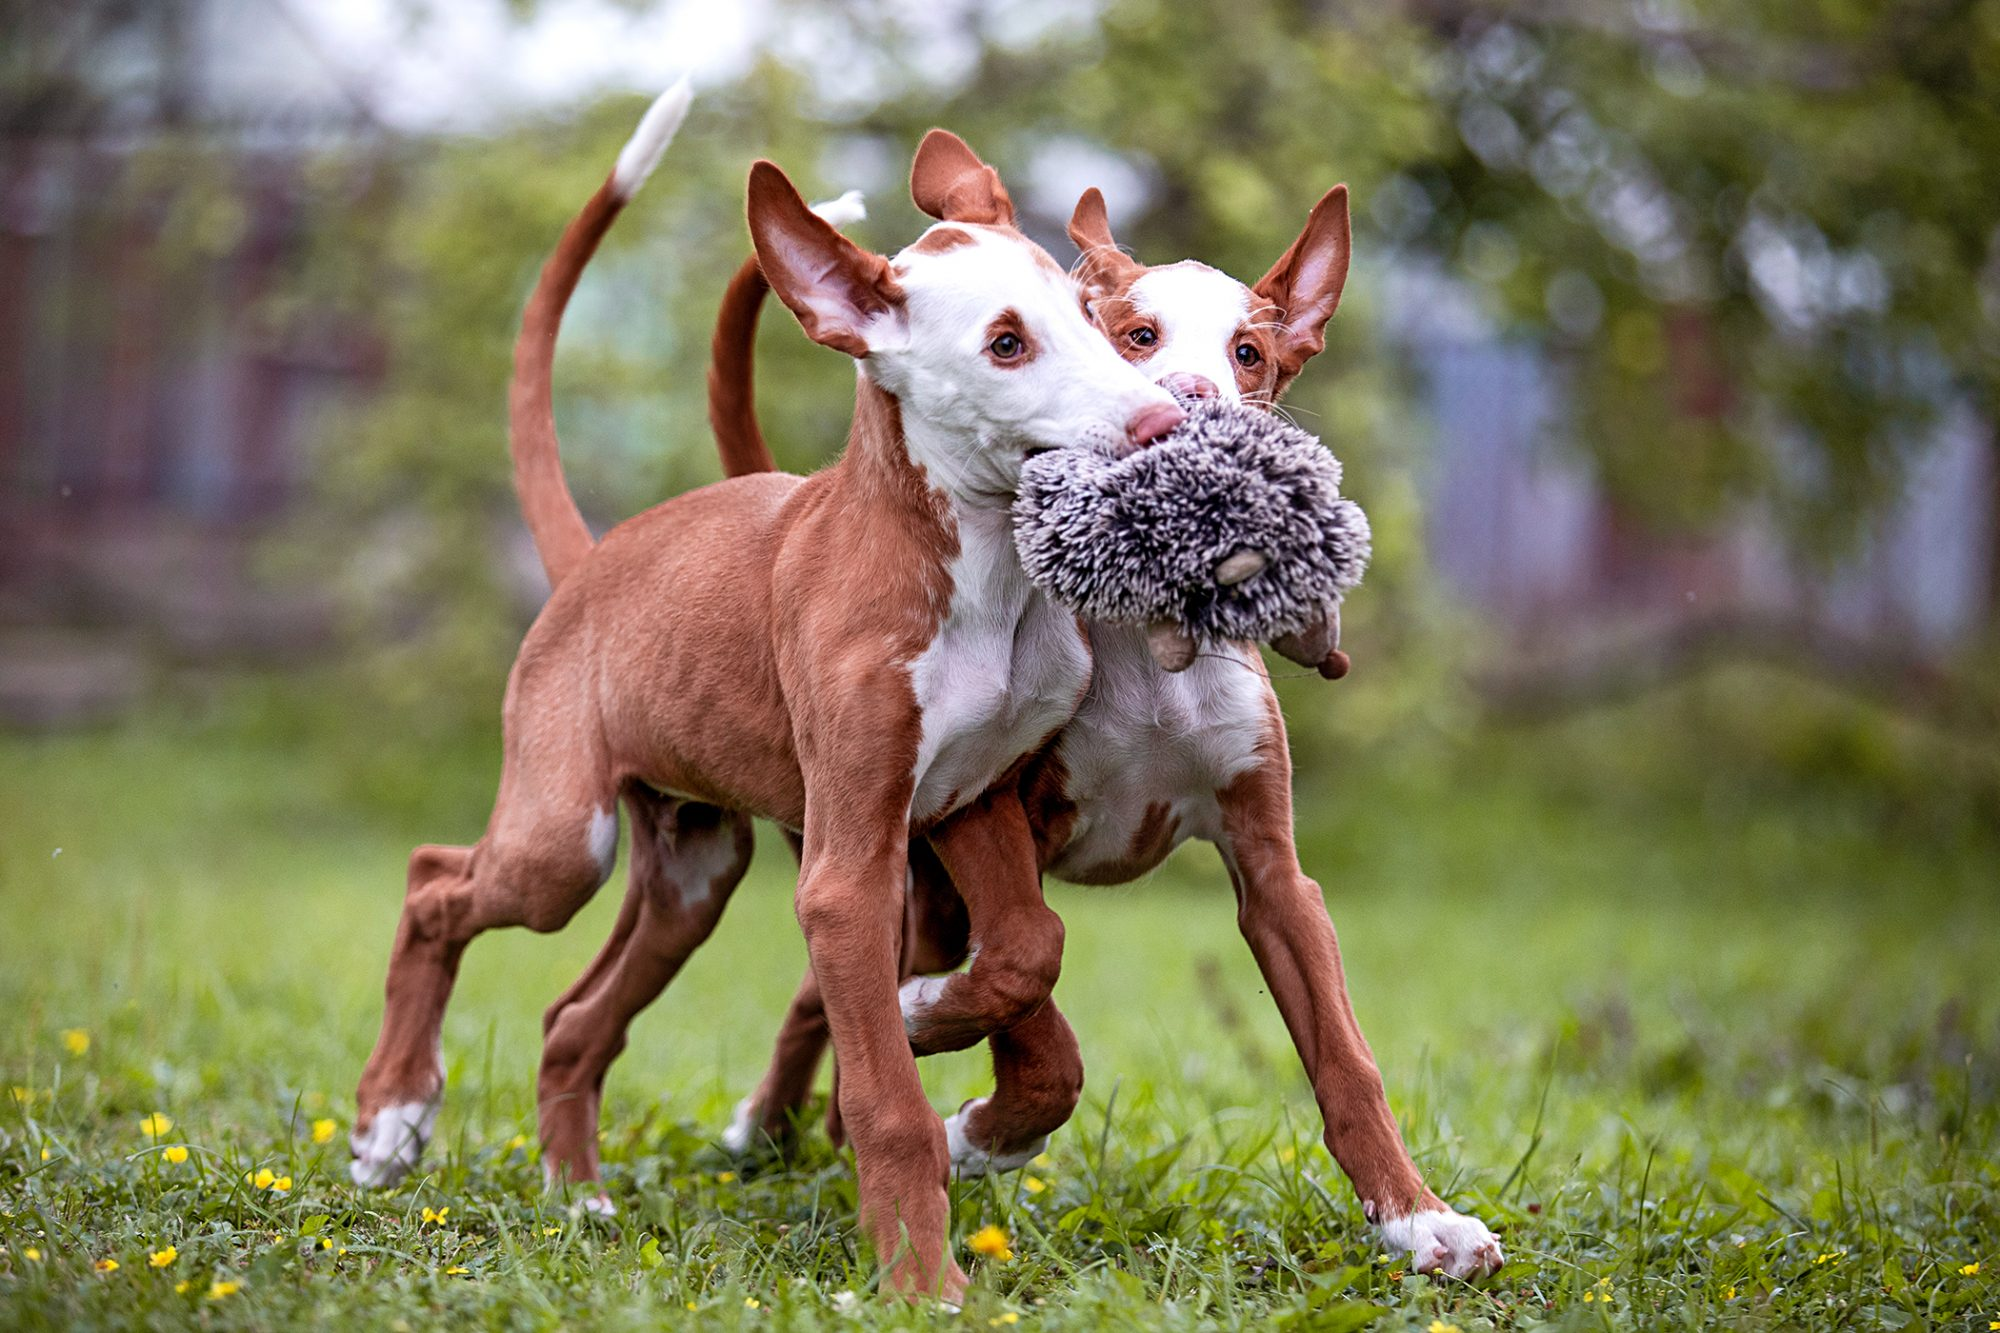 two ibizan hound puppies playing in the yard with a stuffed hedgehog toy